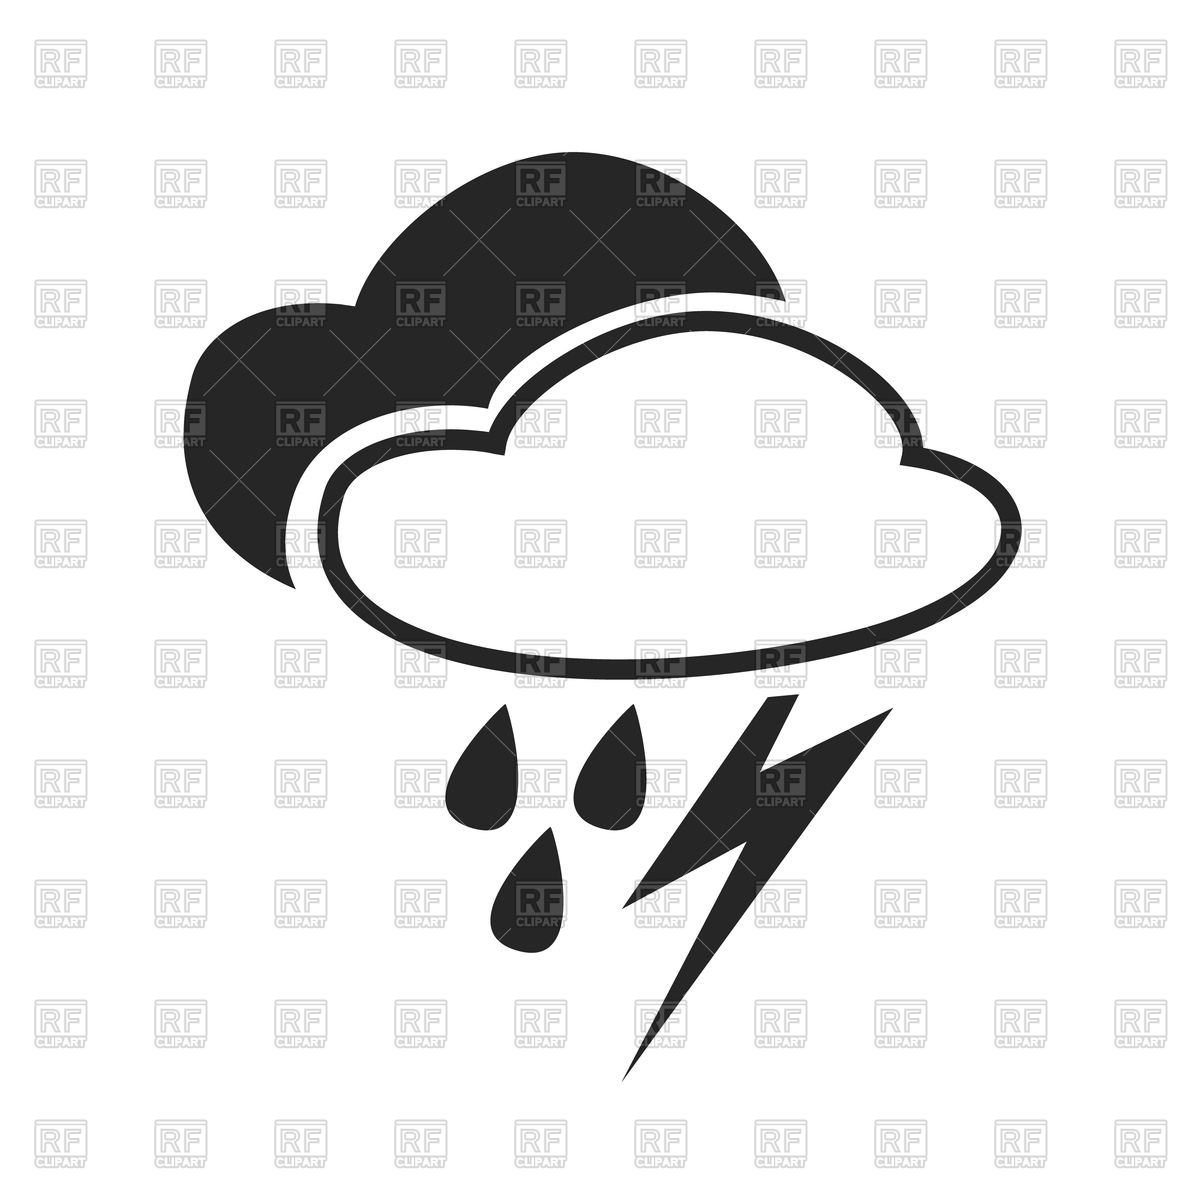 1200x1200 Heavy Rain, Thunderstorm, Weather Forecast Icon Royalty Free